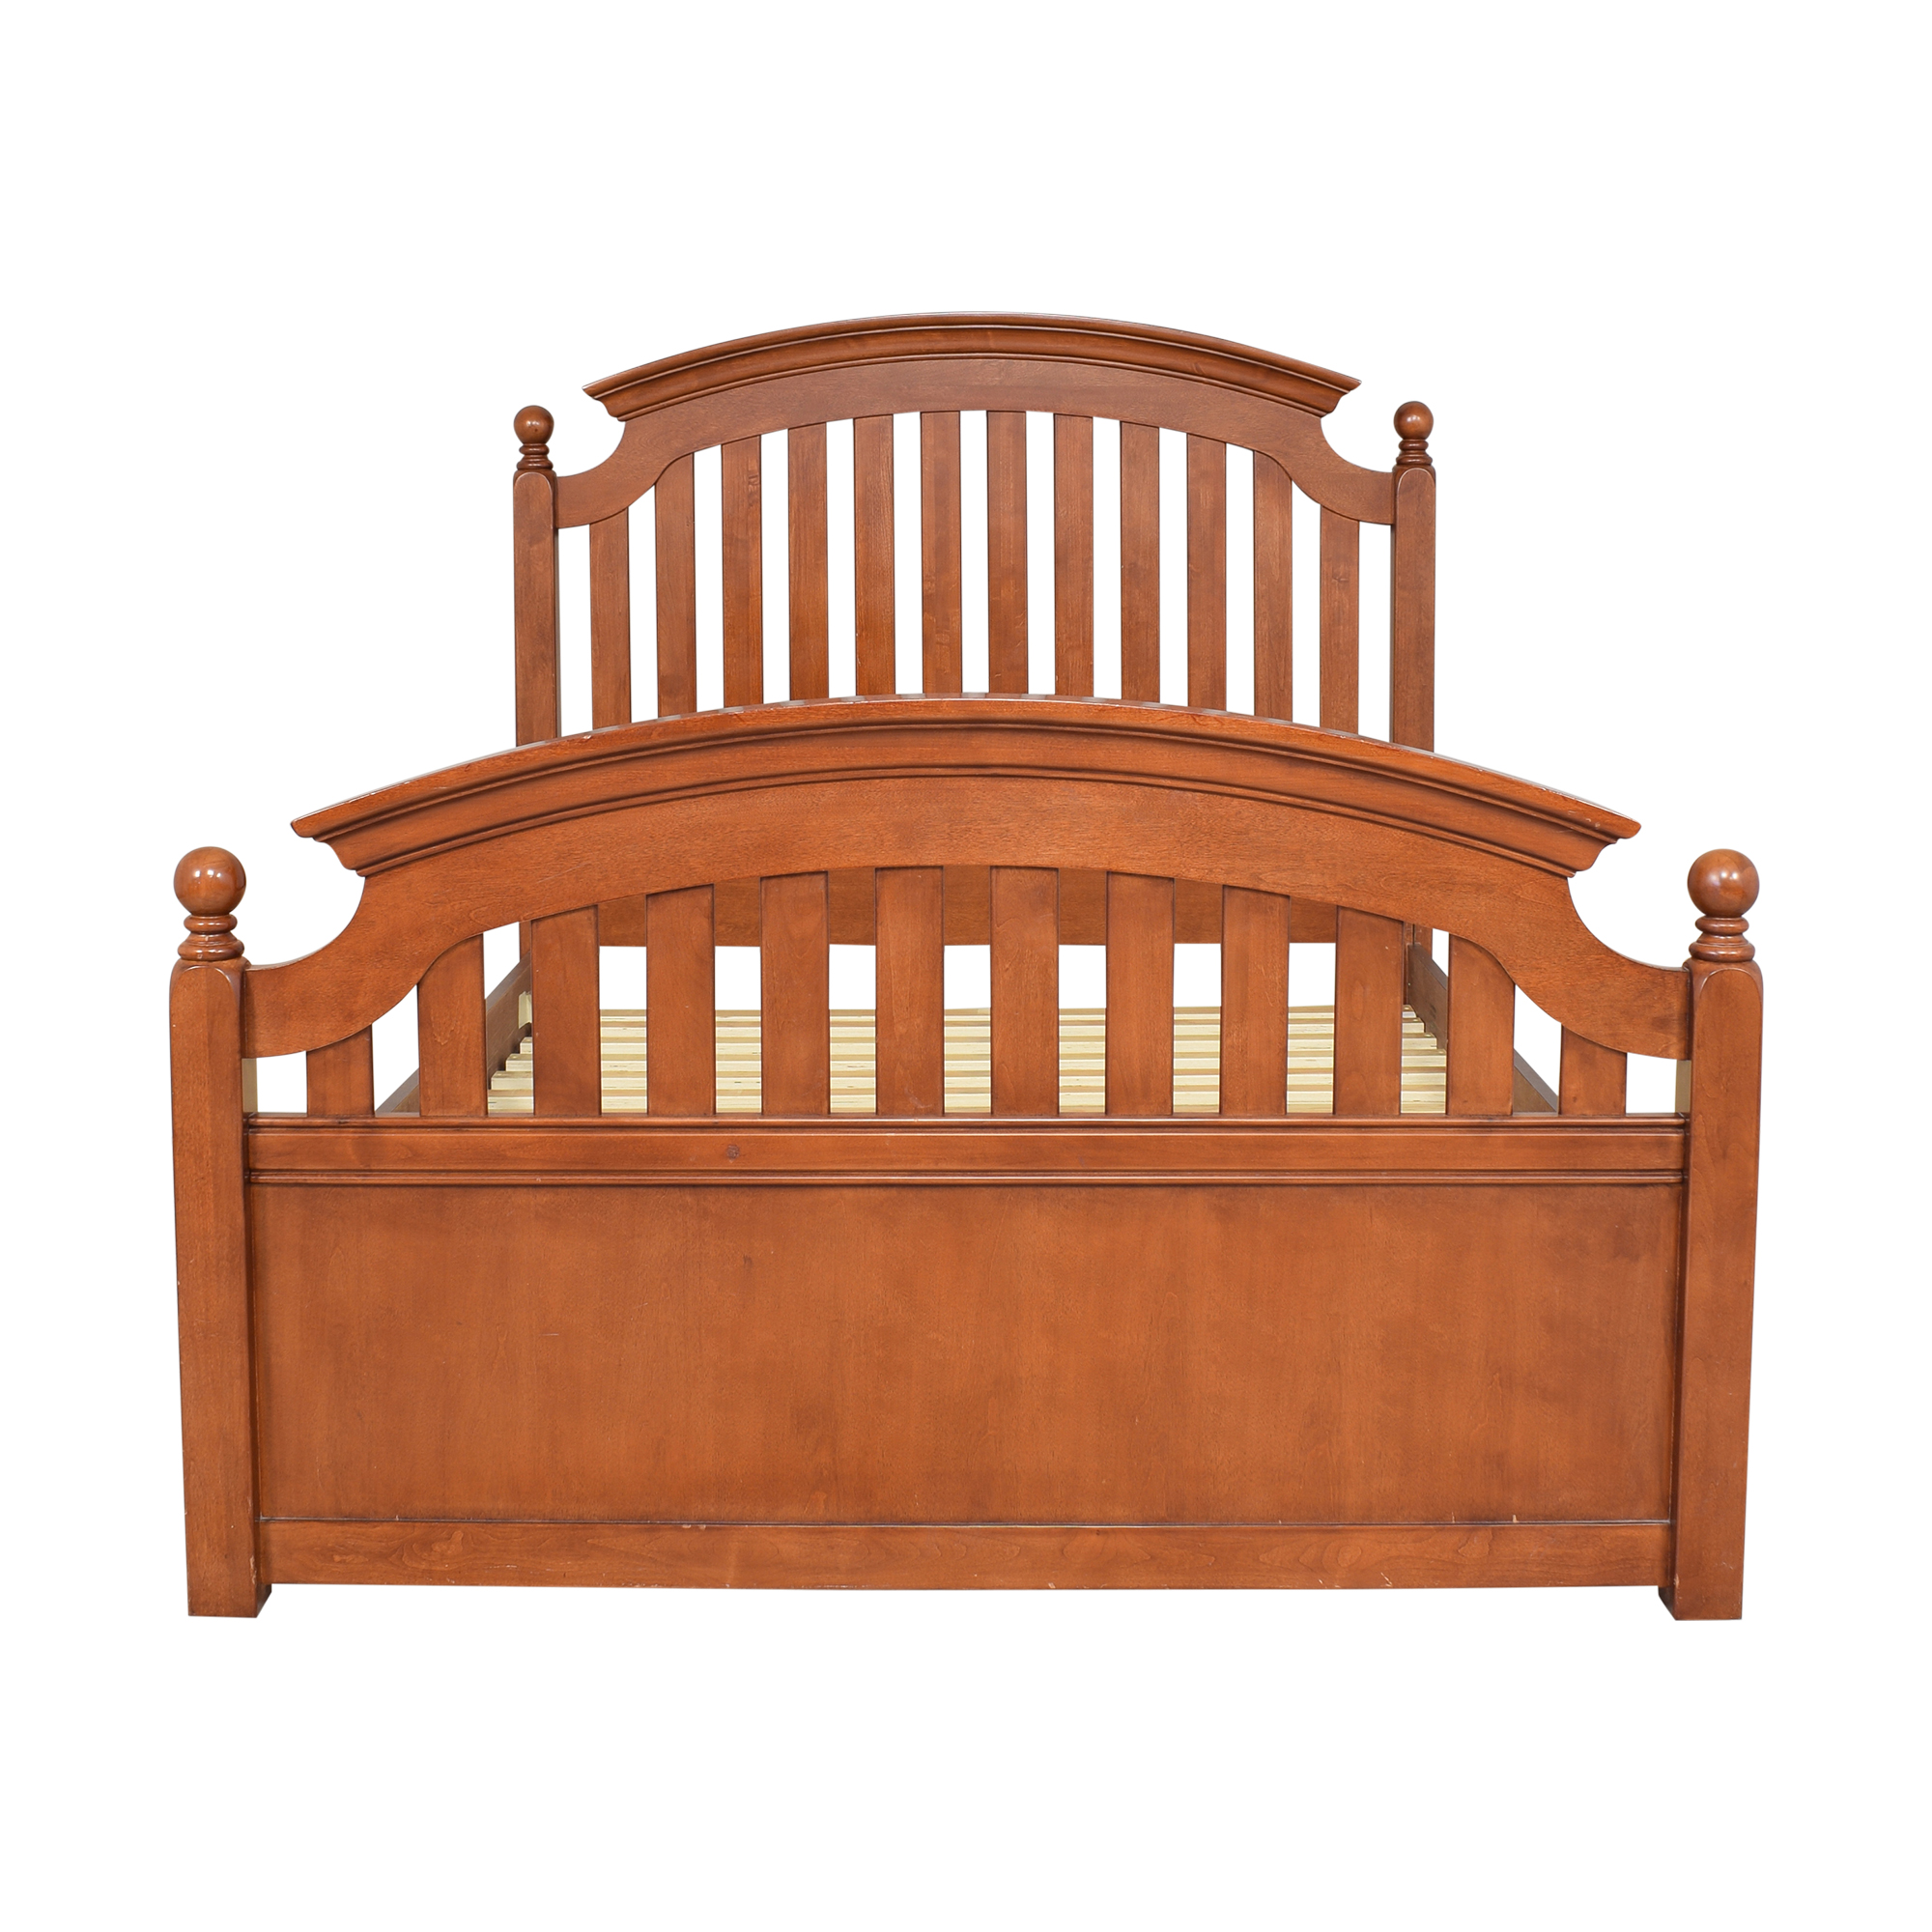 Stanley Furniture Stanley Furniture Full Slat Bed Bed Frames